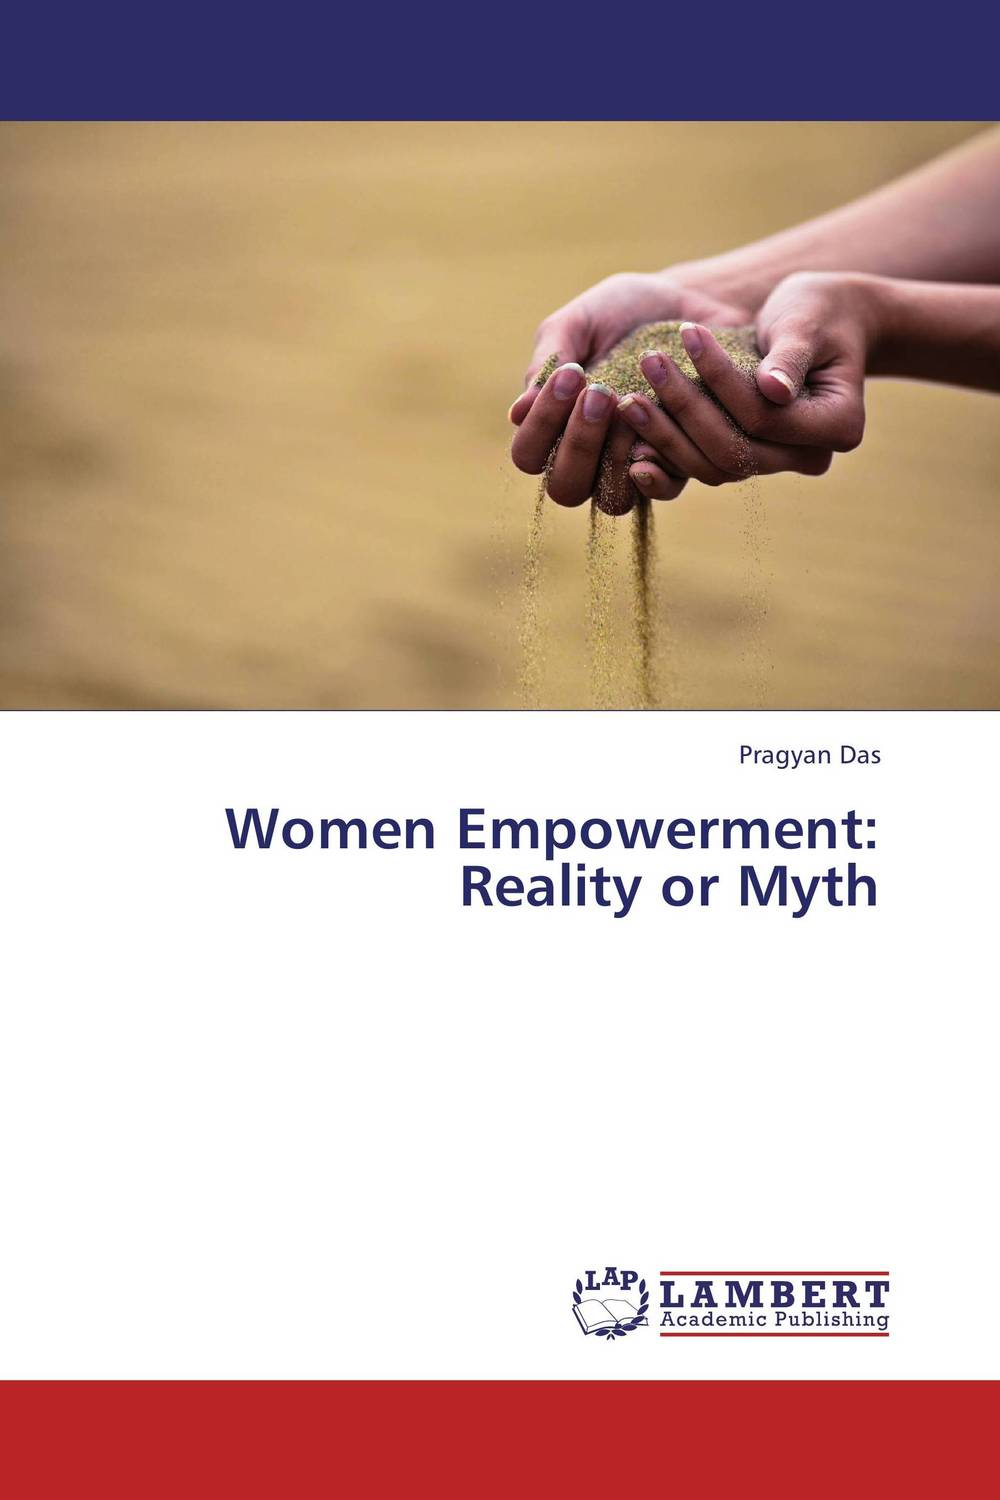 Women Empowerment: Reality or Myth